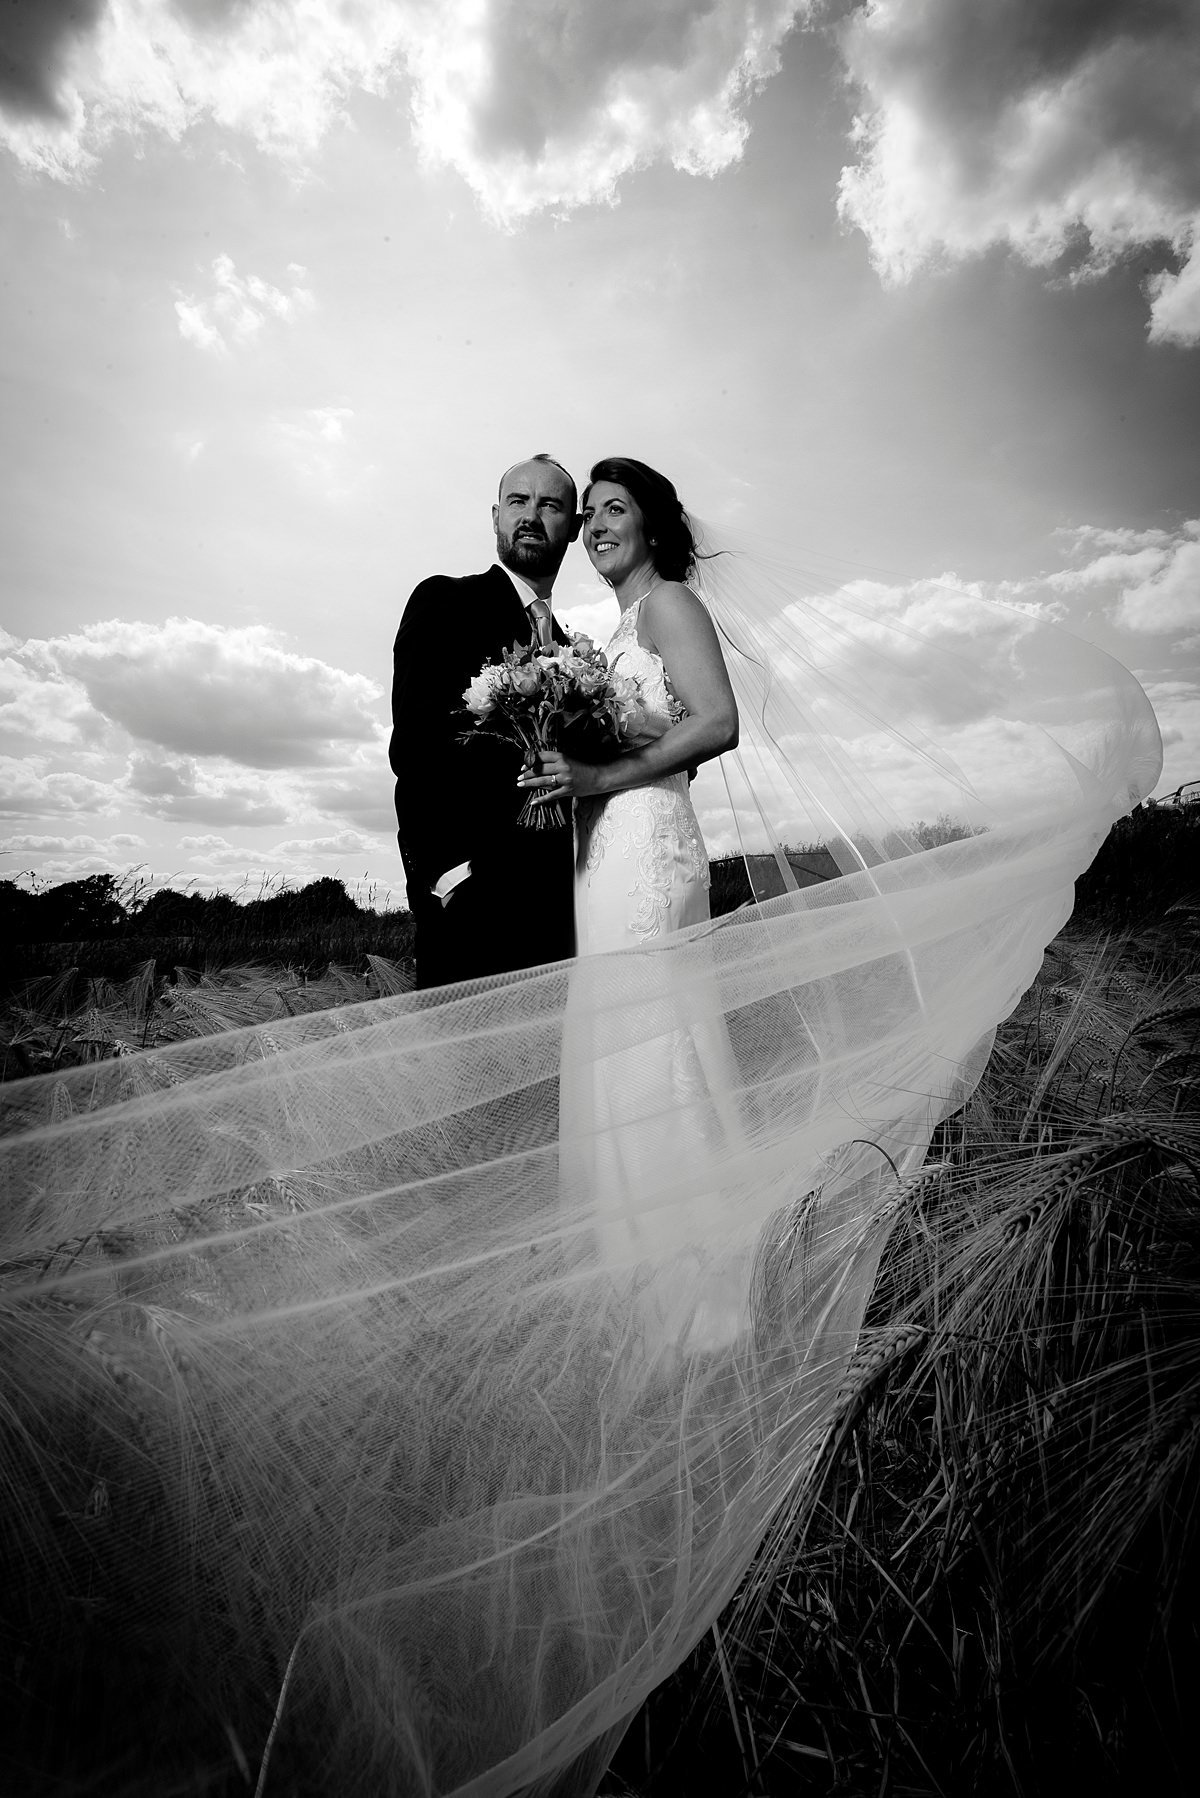 Bride and groom portrait in B&W